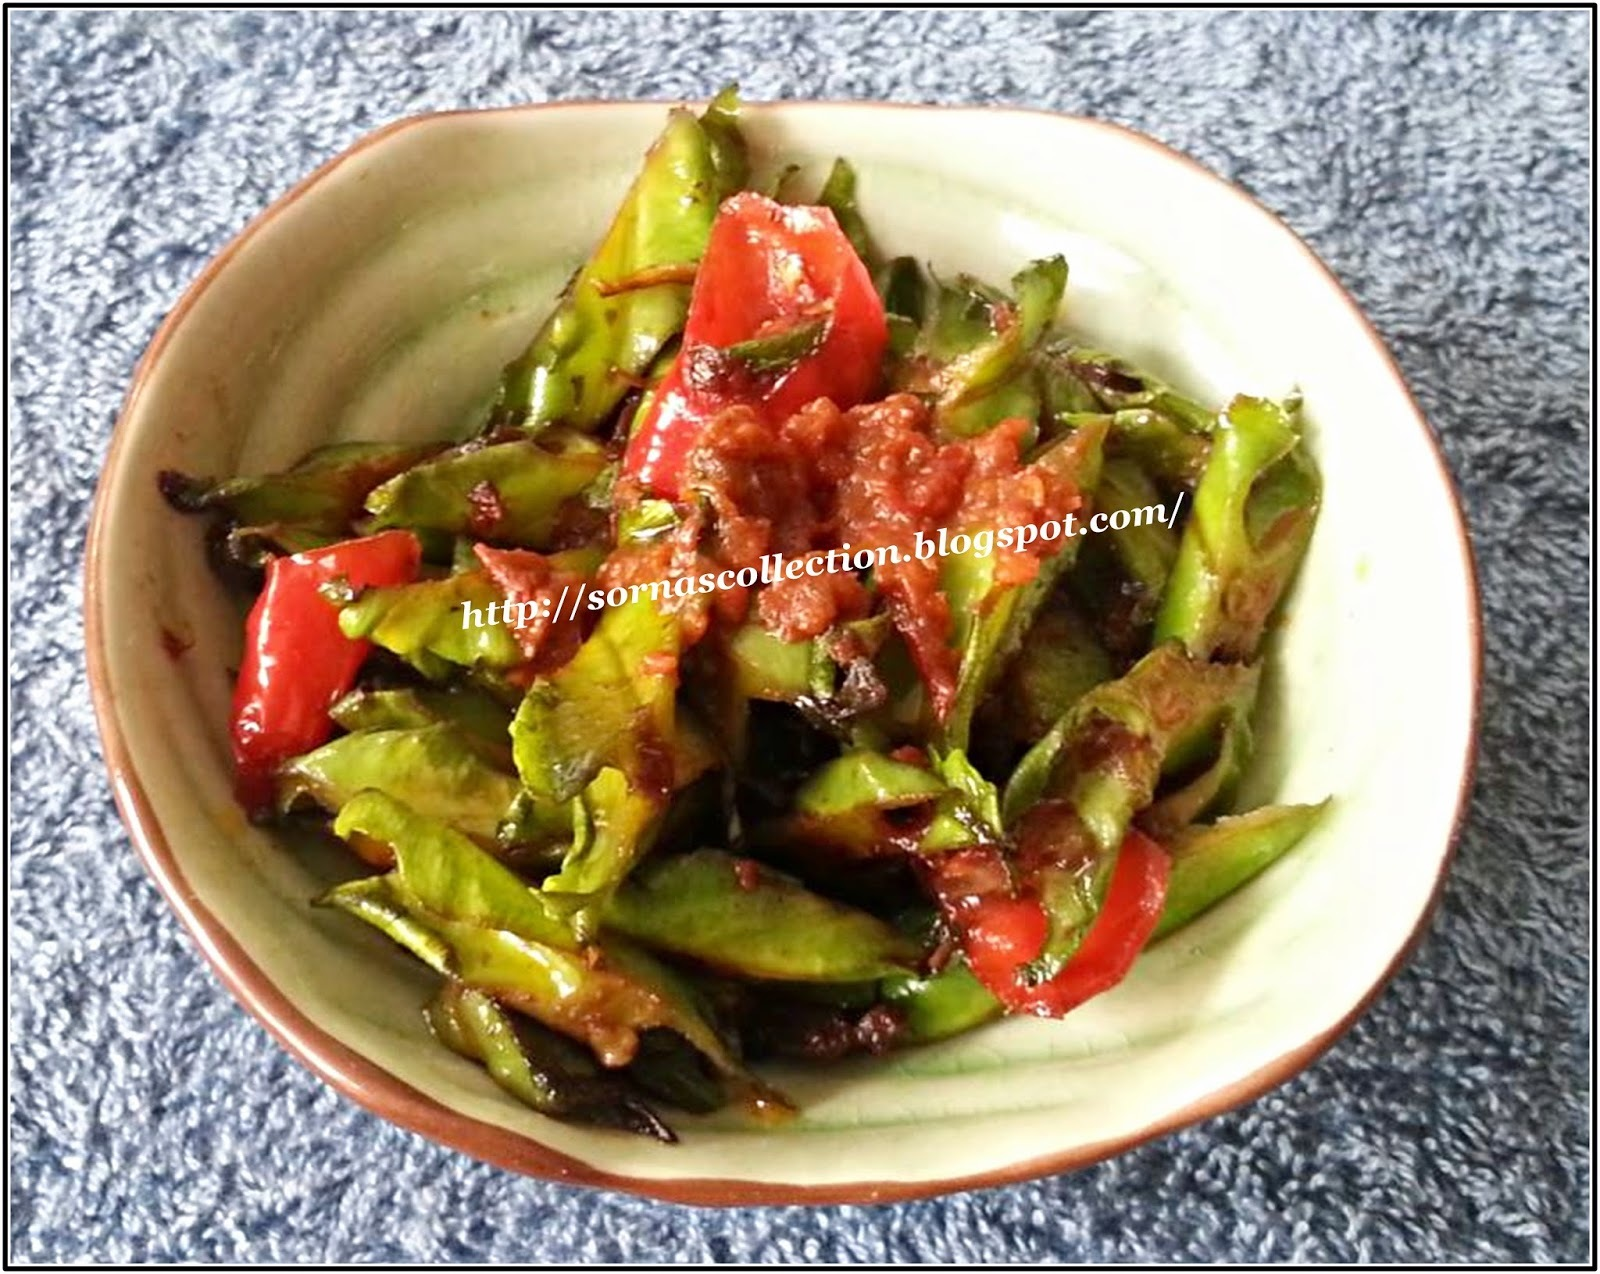 STIR-FRIED WING BEANS WITH SPICY SHRIMP PASTE